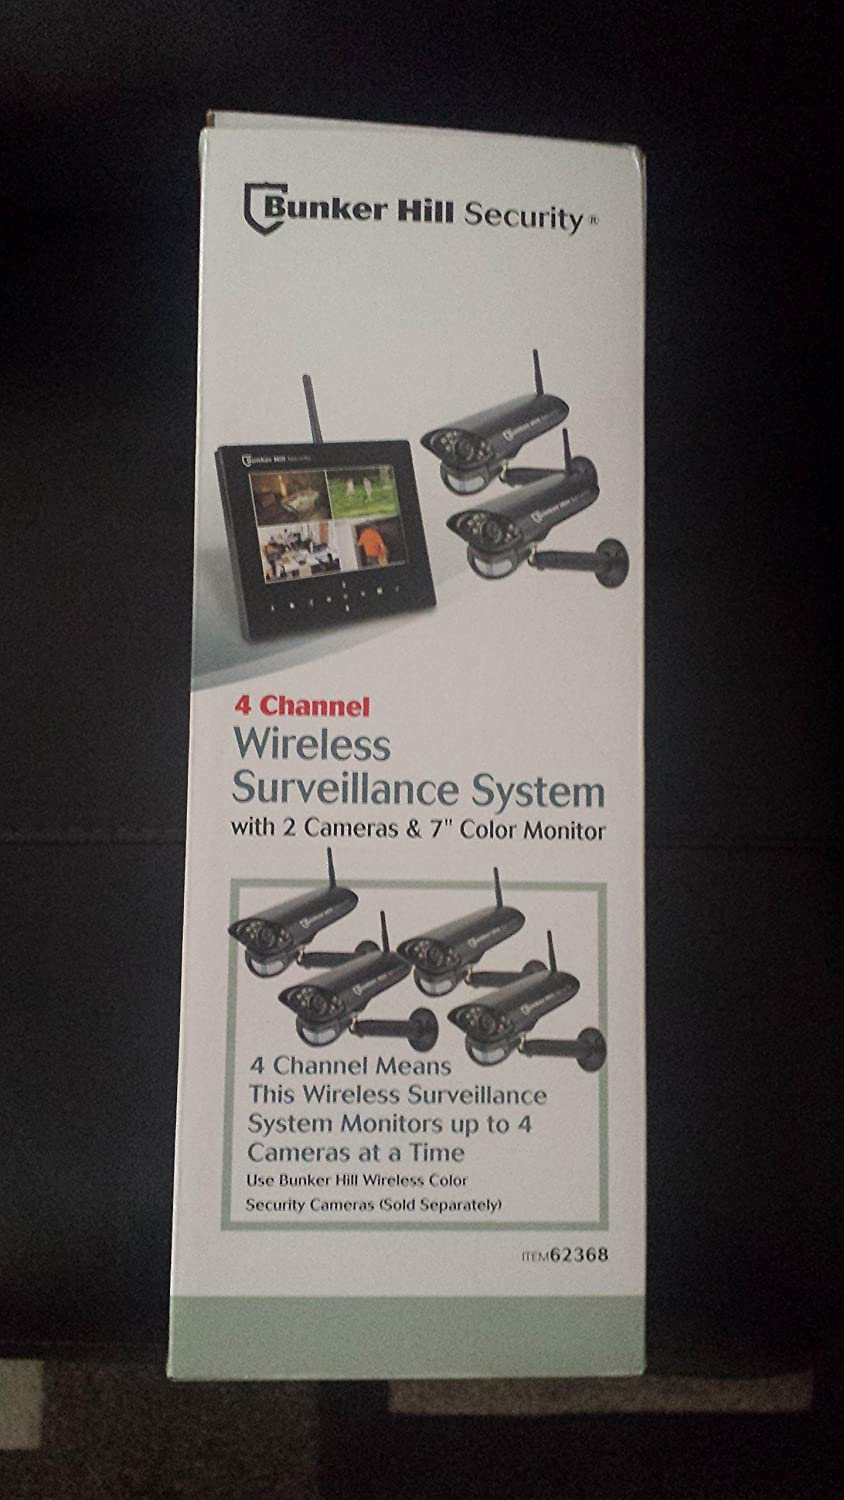 810A%2BAwQVbL._SL1500_ amazon com new bunker hill wireless surveillance system 62368 4  at bayanpartner.co